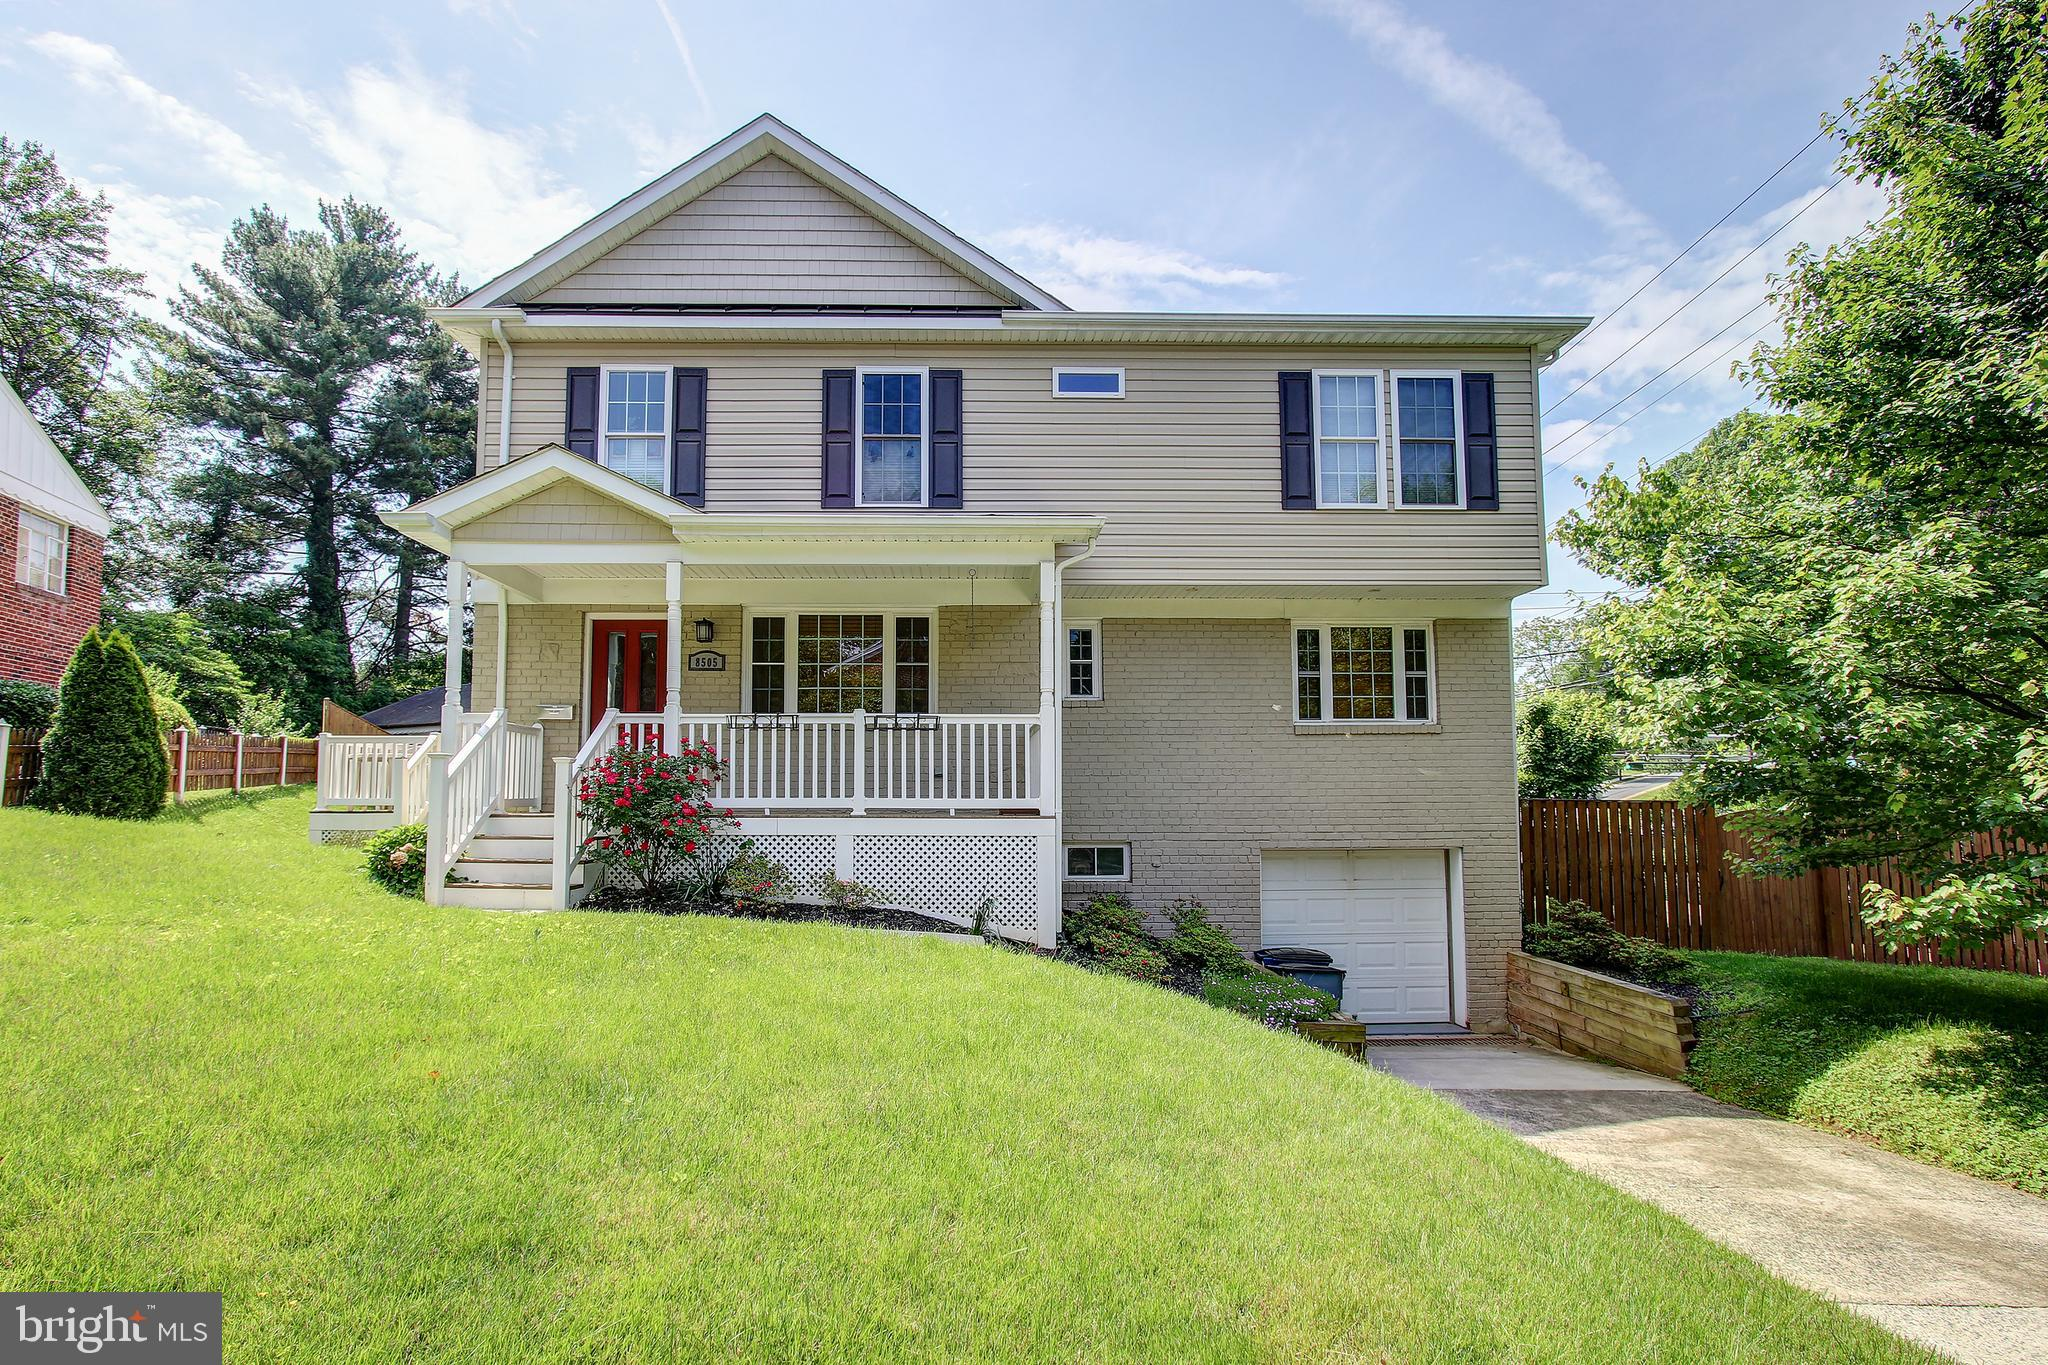 8505 MILFORD AVENUE, SILVER SPRING, MD 20910